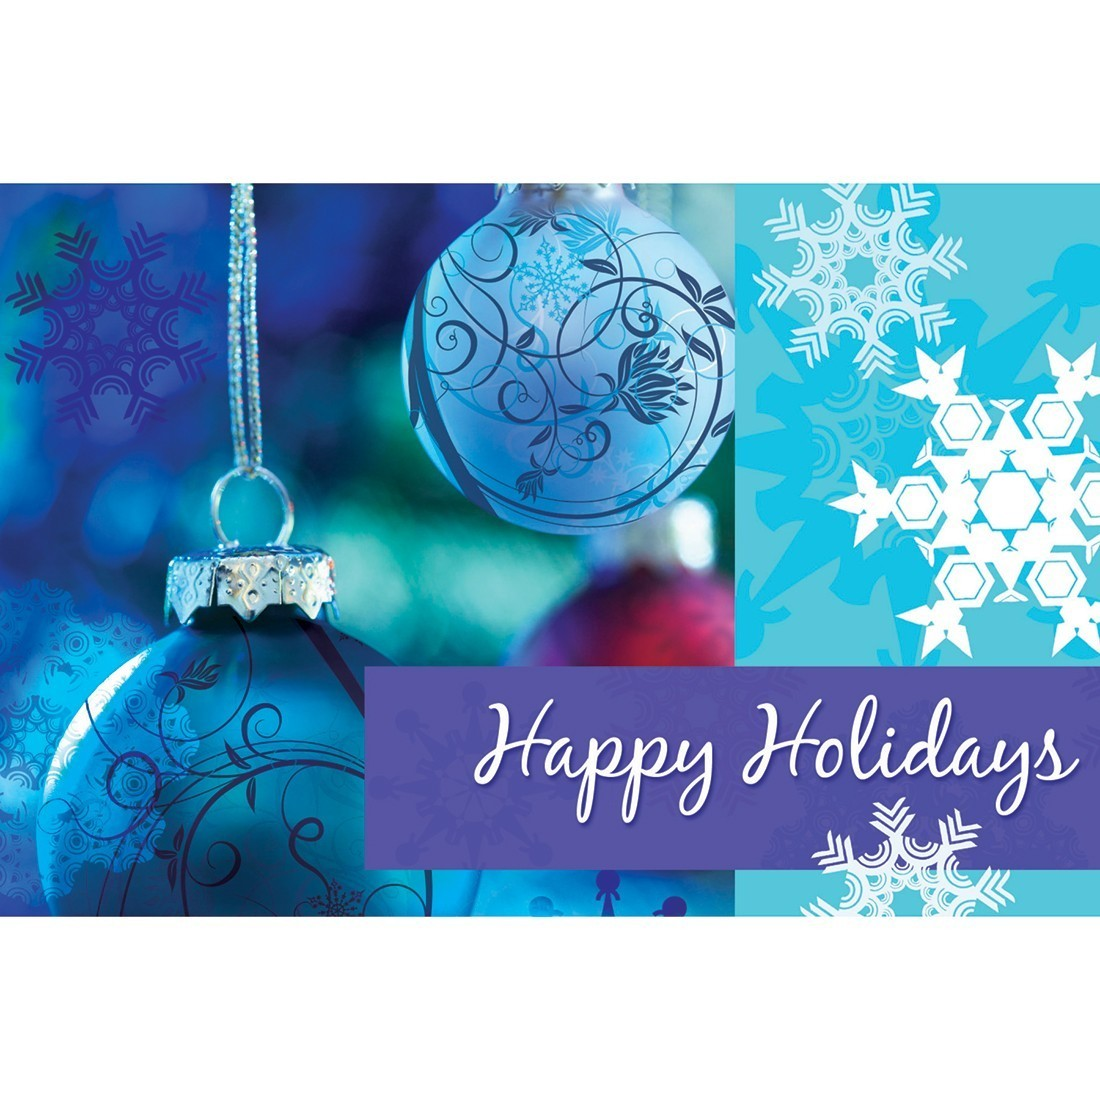 Happy Holidays Greeting Cards [image]